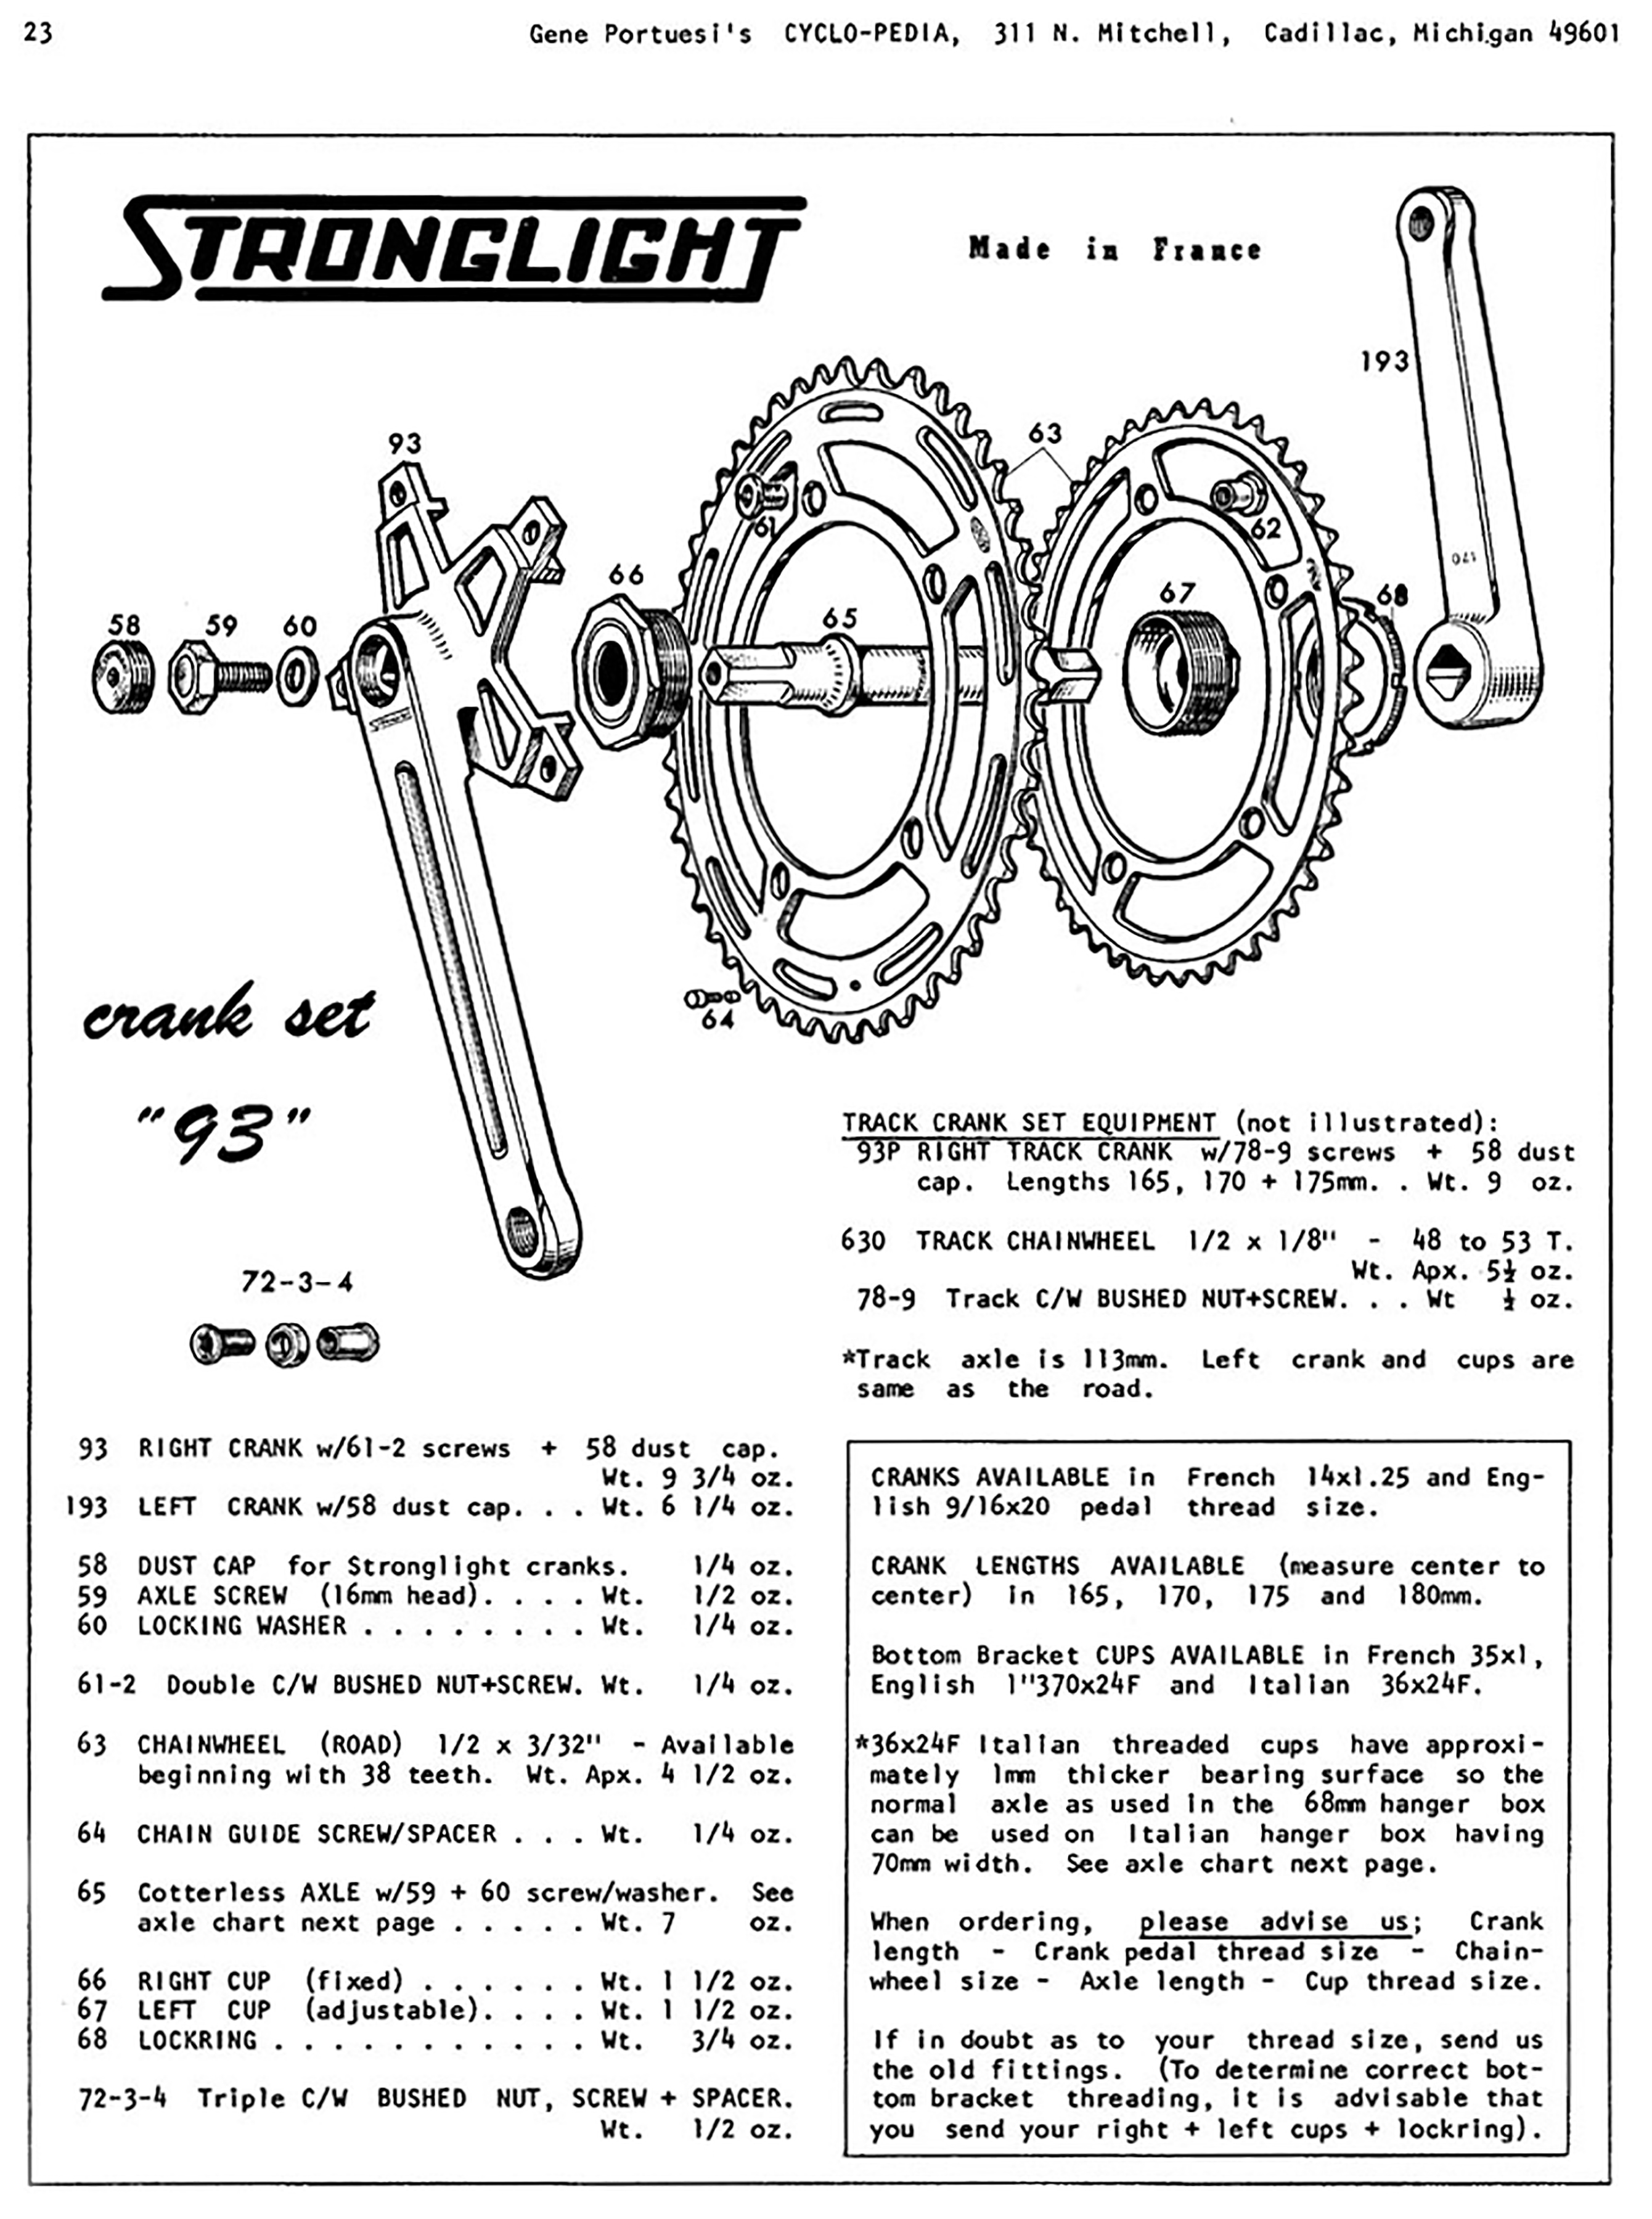 ebykr-stronglight-model-93-crankset-cyclo-pedia-page-23